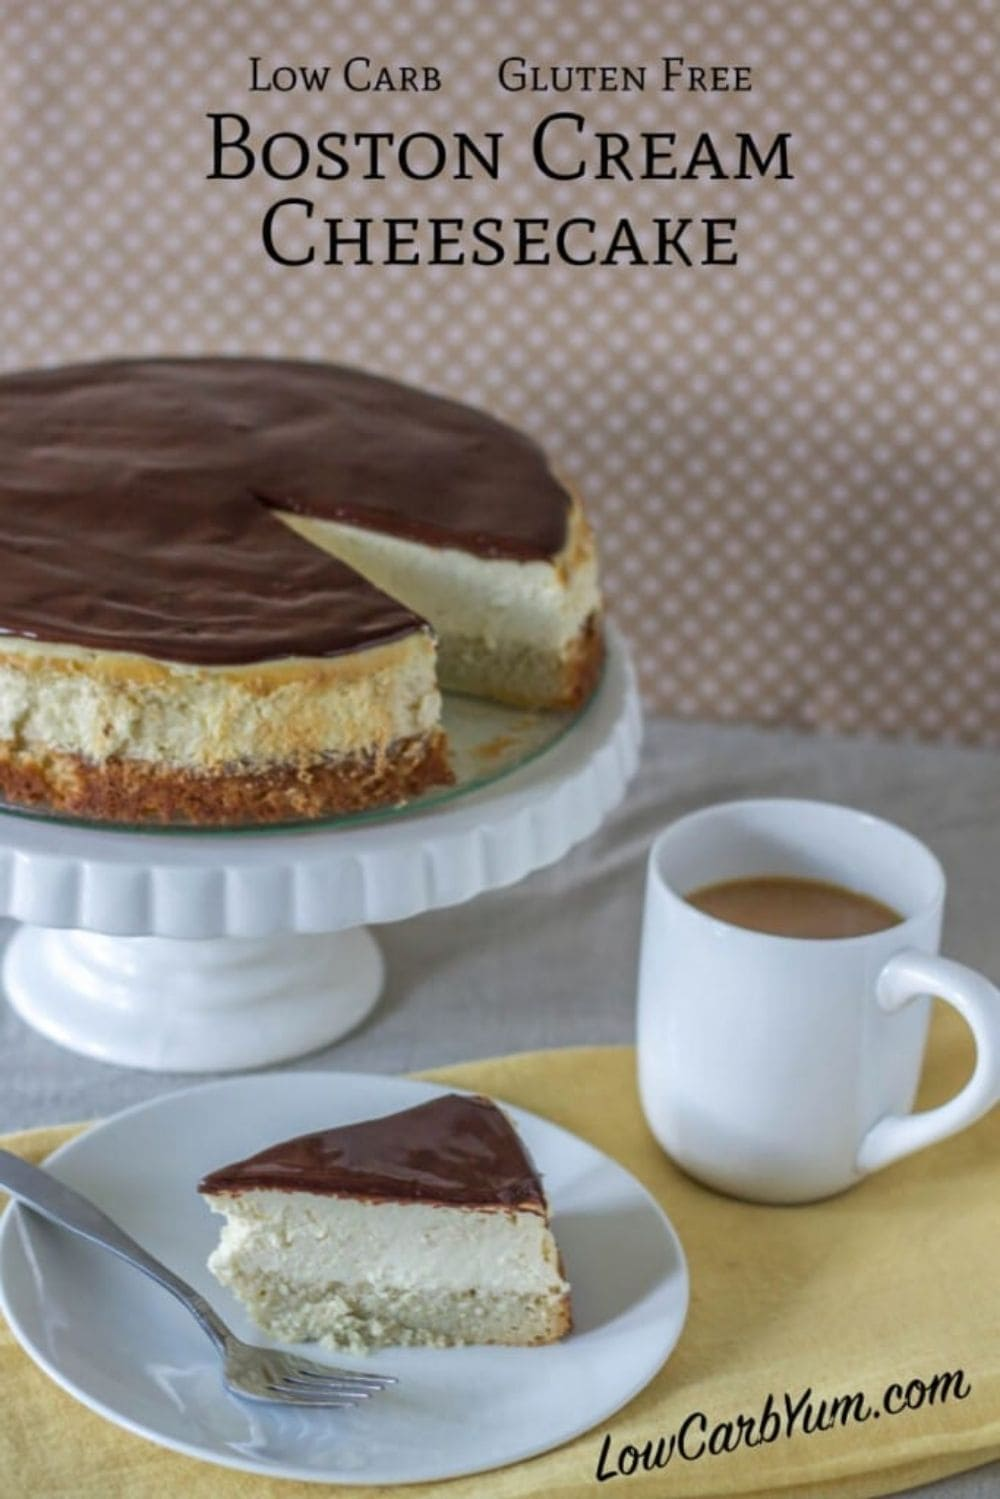 one slice of boston cream keto cheesecake on a plate with a fork next it and a coffee and a boston cream keto cheesecake sitting on an elevated platter with one piece missing